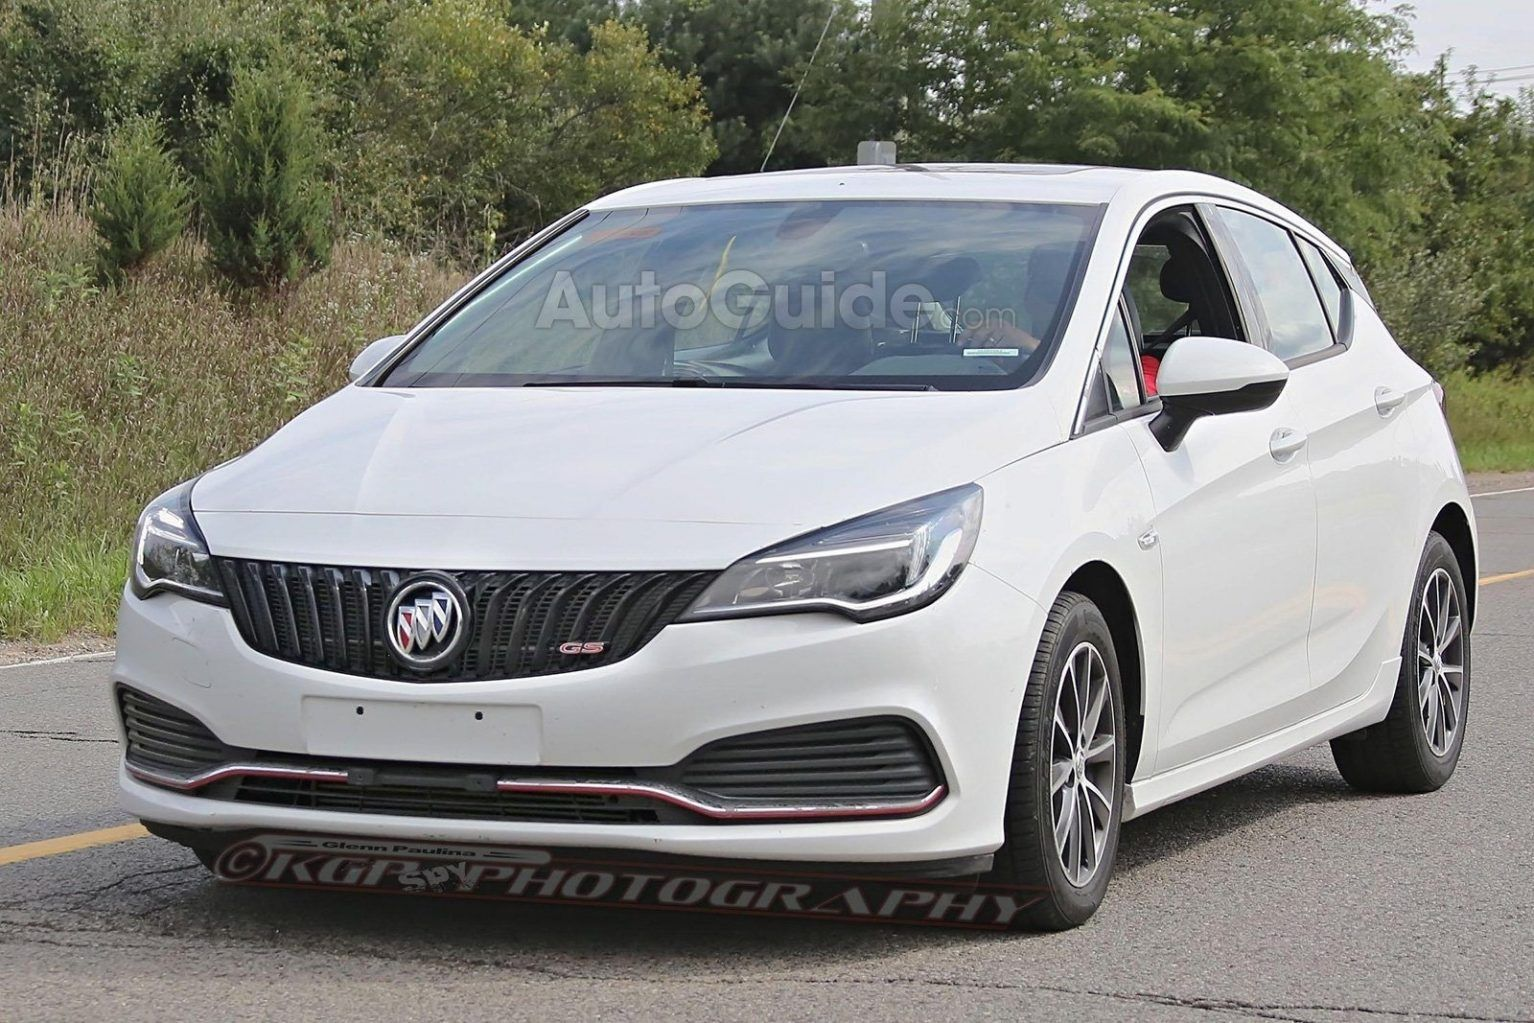 2019 Buick Verano Interior Exterior And Review Cars New Buick